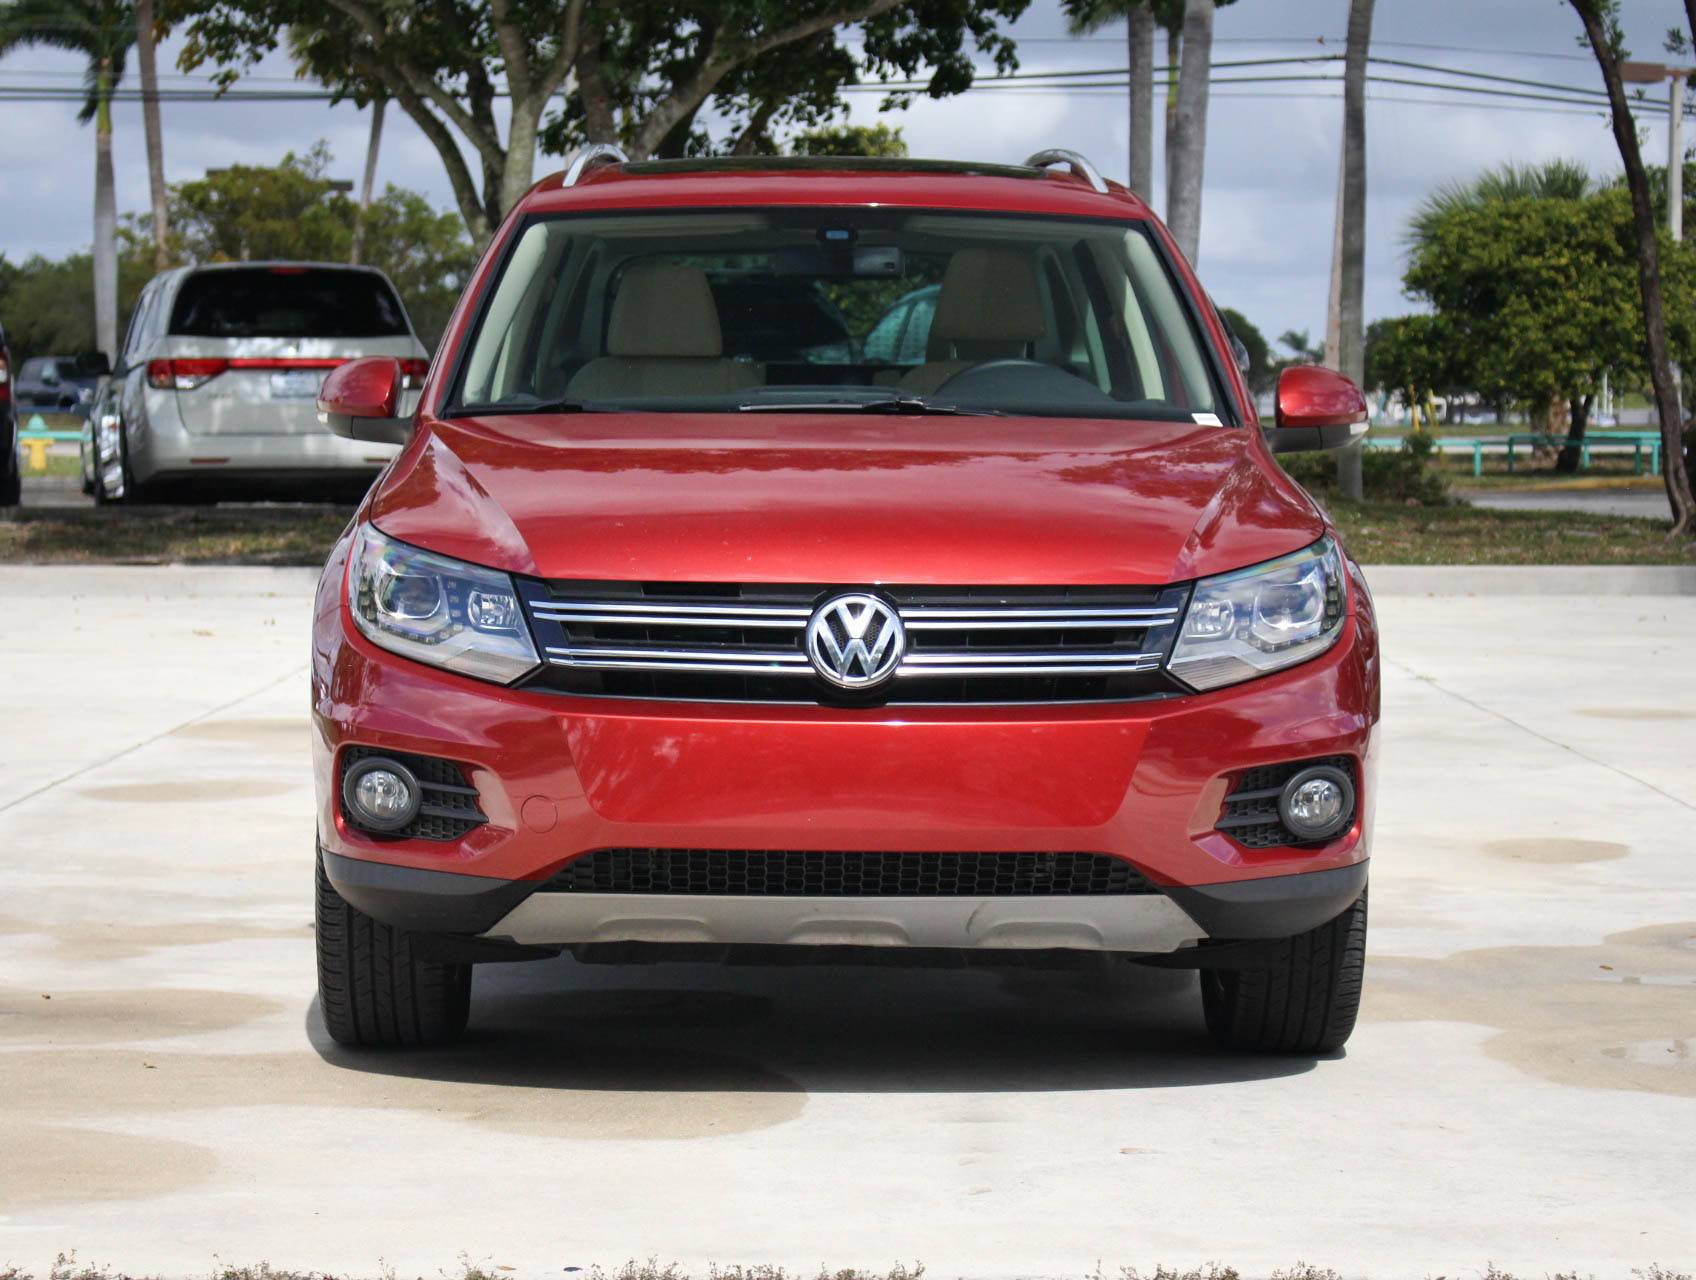 volkswagen suv exterior reviews review side tiguan view